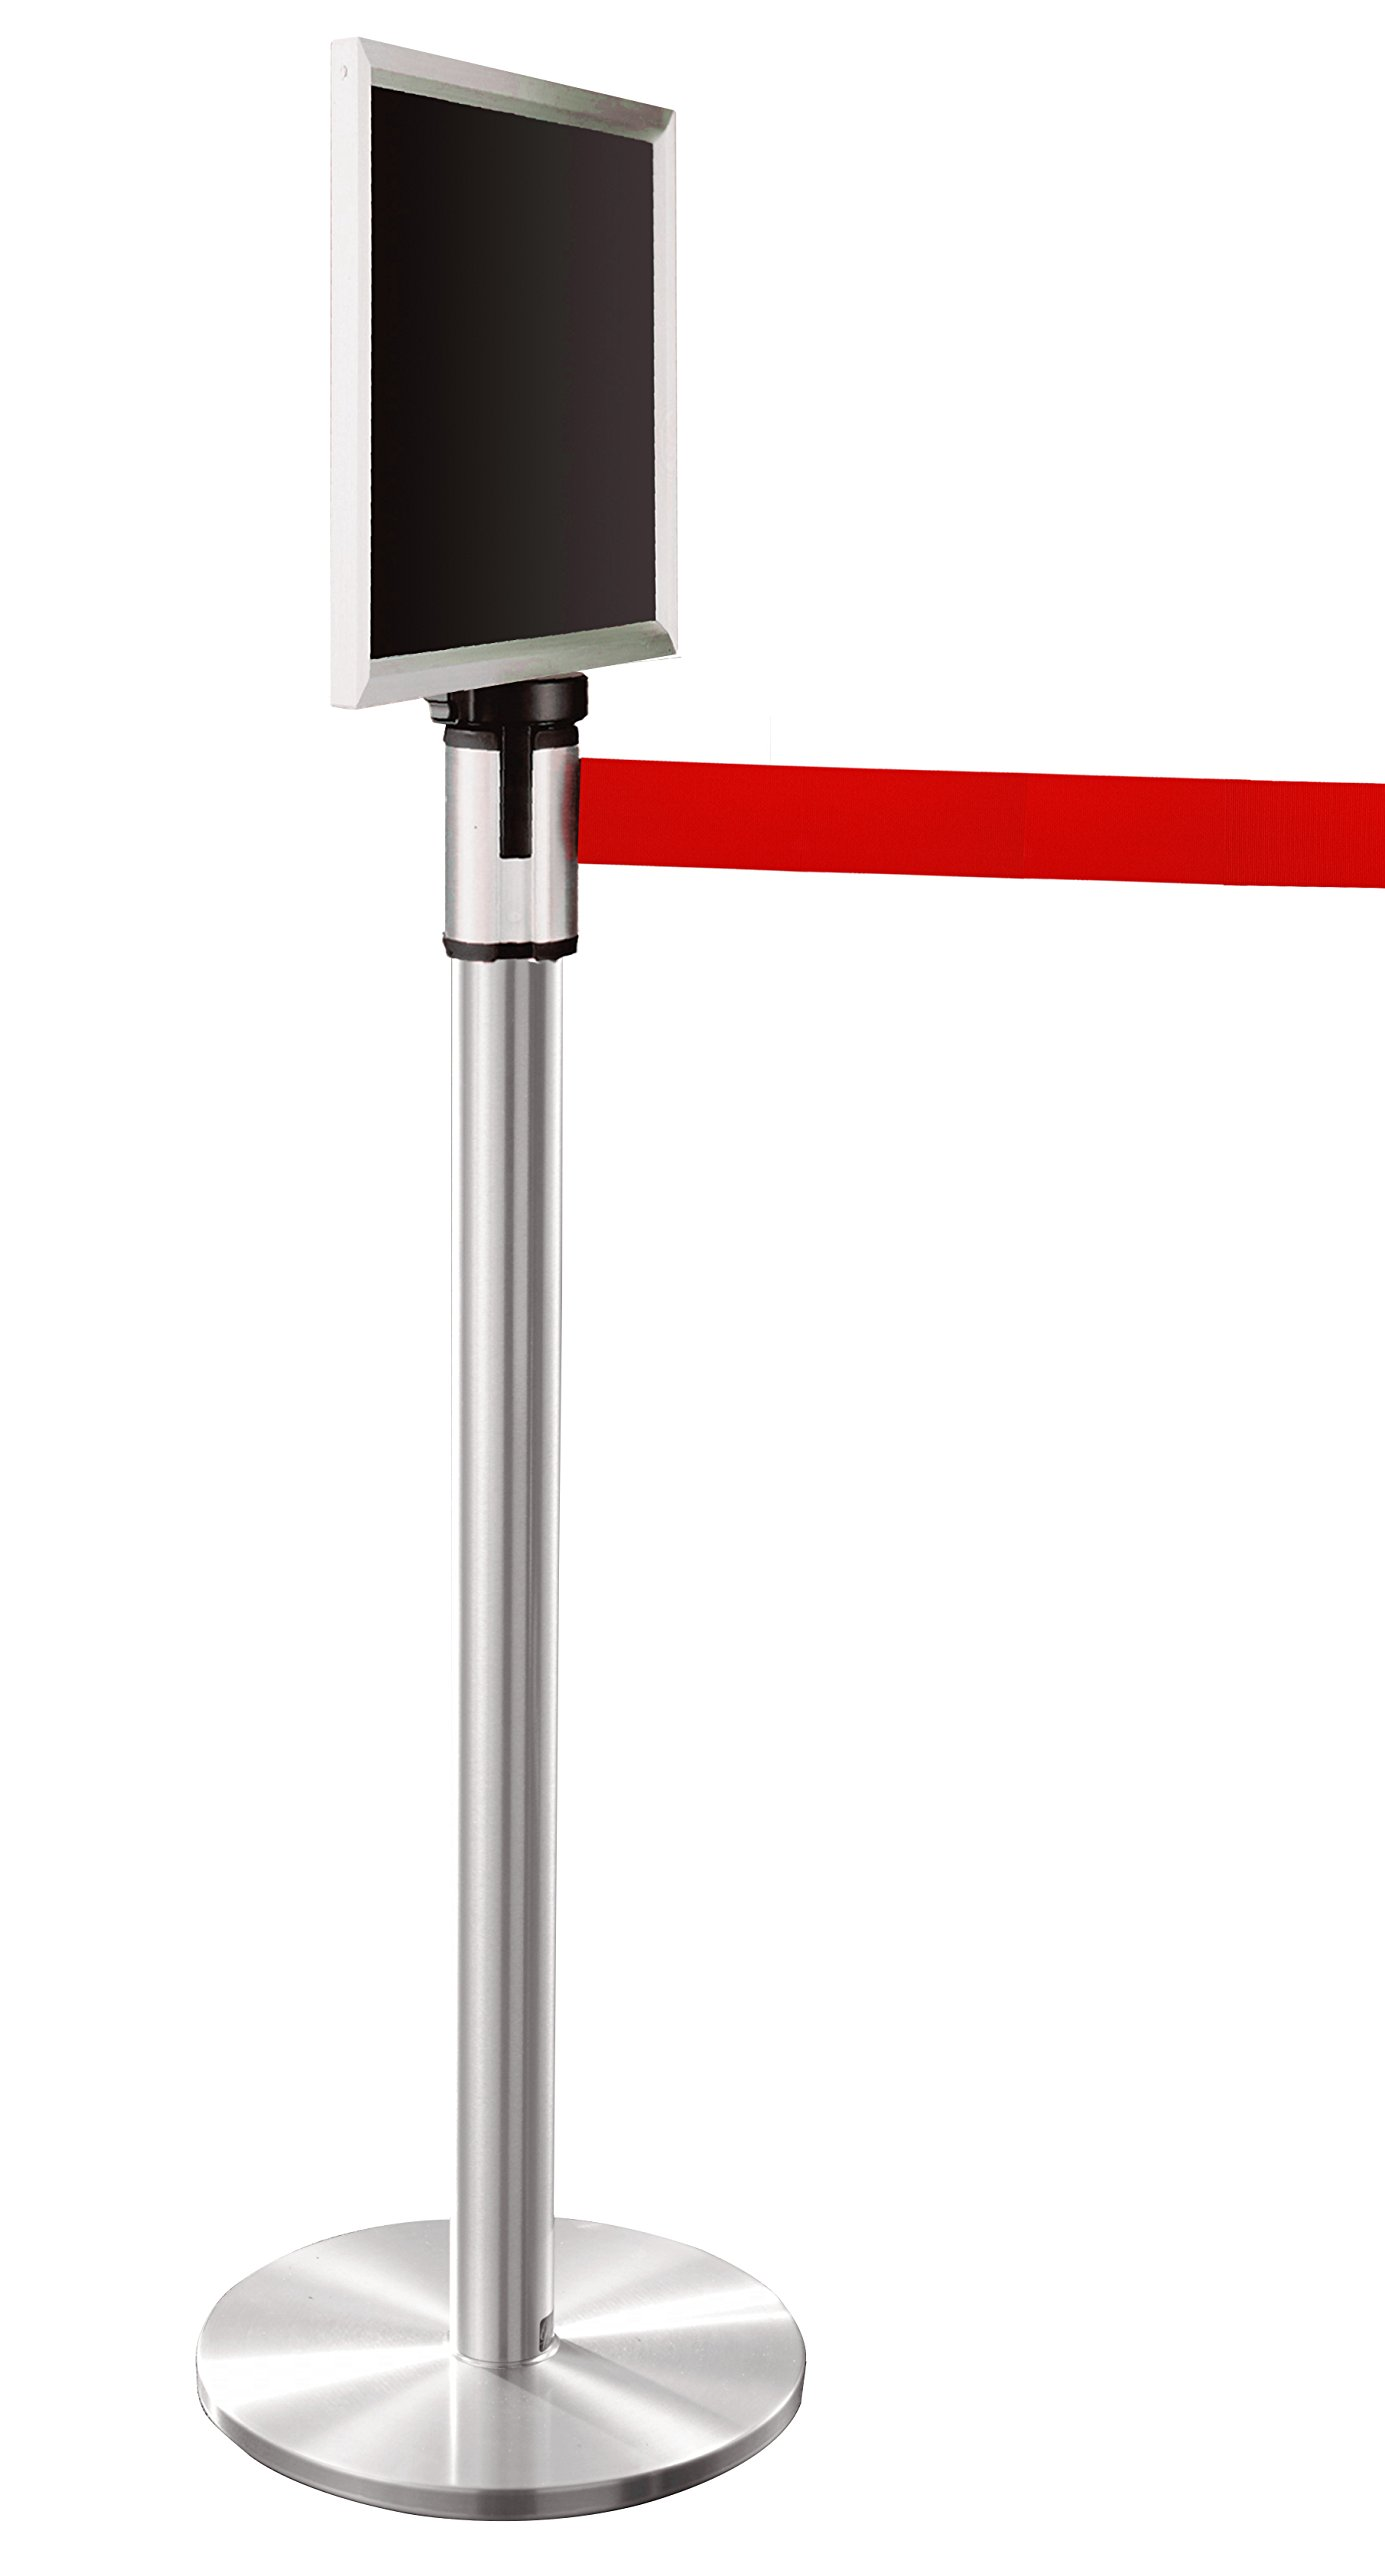 Glaro 152SA-RD-EXL1411SA 13' Retractable Belt Crowd Control Post - Satin Aluminum finish - Red Belt - Satin Aluminum Sign Frame Included